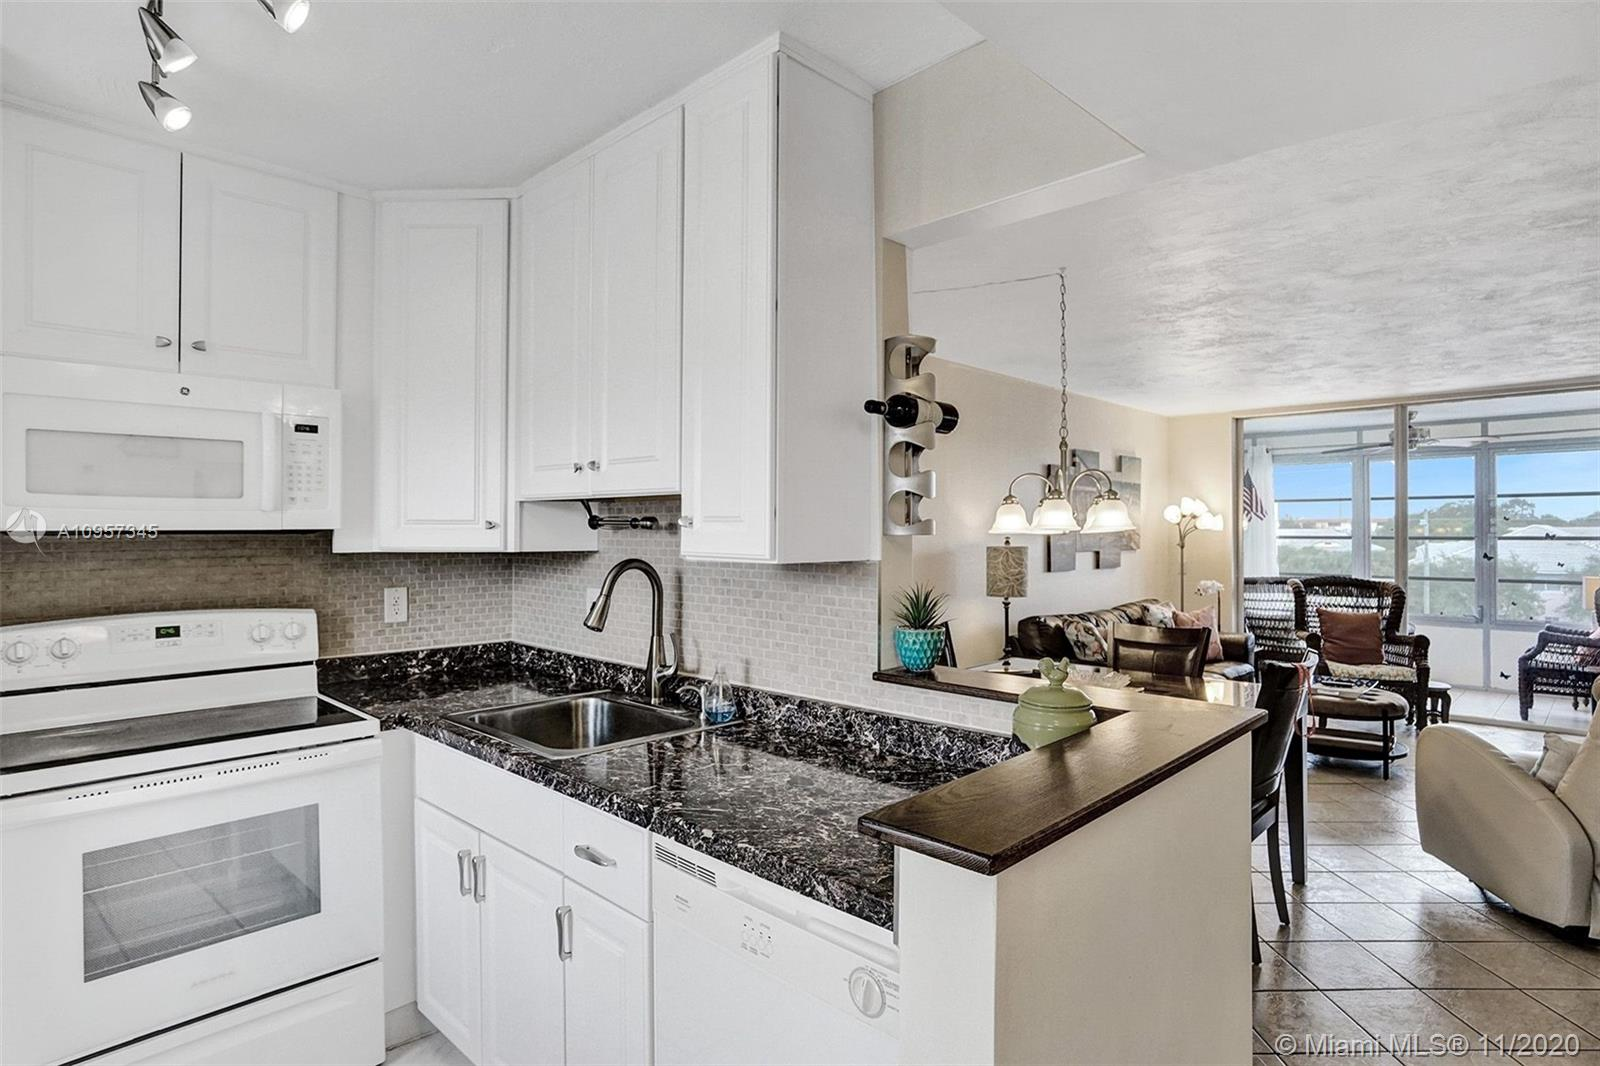 Beautiful corner unit completely remodeled with 1 bedroom and 1 bathroom in Somerset Phase 1.. Rare open kitchen with white cabinets all the way to the ceiling and new refrigerator. Tile floor throughout the entire unit, New AC and new thermostat. Large bedroom with walk-in closet. Wait until you see the bathroom, immaculate! Seller will sell furnished and turnkey (some exclusion) and ready to move in.  Community with lots of activities, heated pool, tennis, shuffleboard, bingo and more. Gated with security 24H and low maitenance fees. Closed to the restaurants, shops and casino, MUST SEE